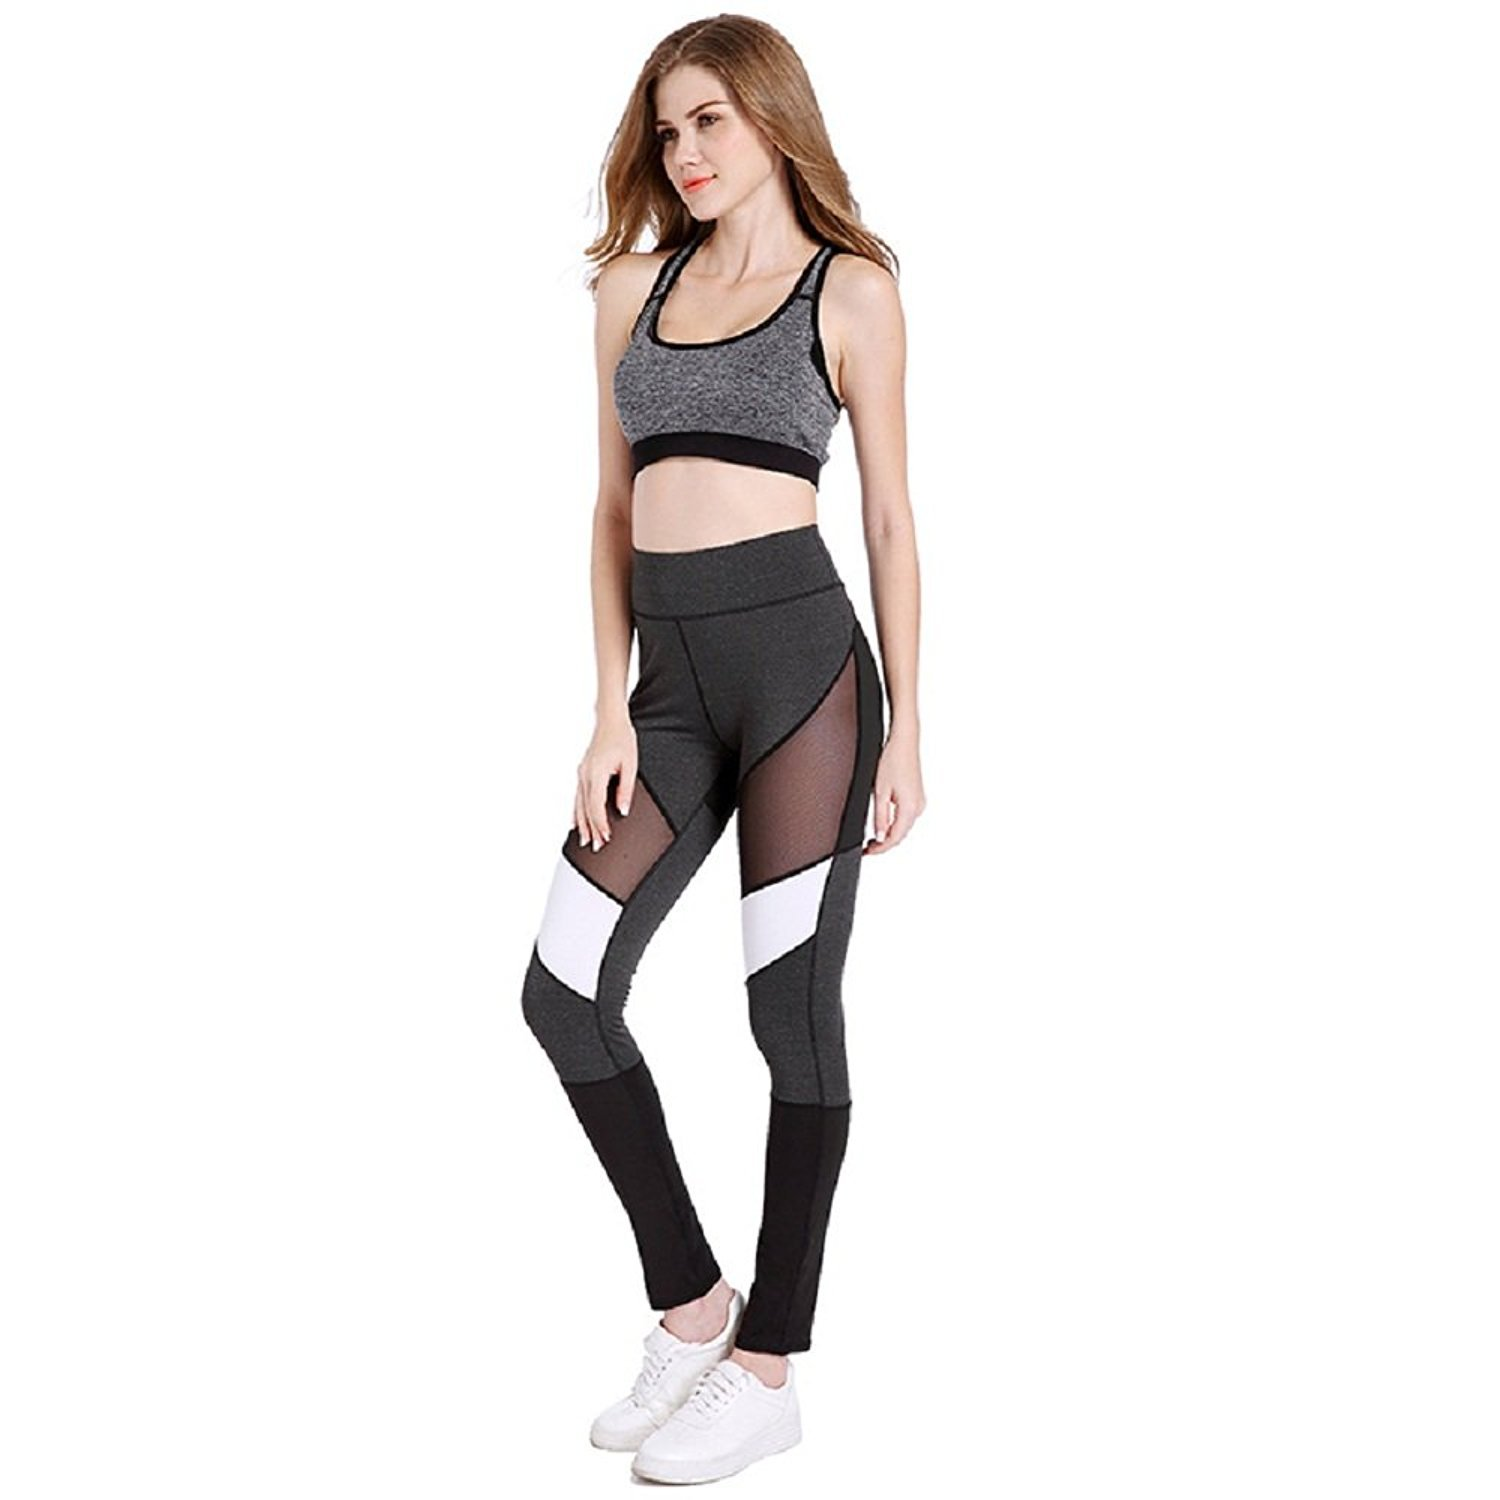 4315dd9ef3 zm Z.M Women's Stretchy Skinny Color Block Workout Leggings Yoga Tights  Pants Mesh Push Up Trousers